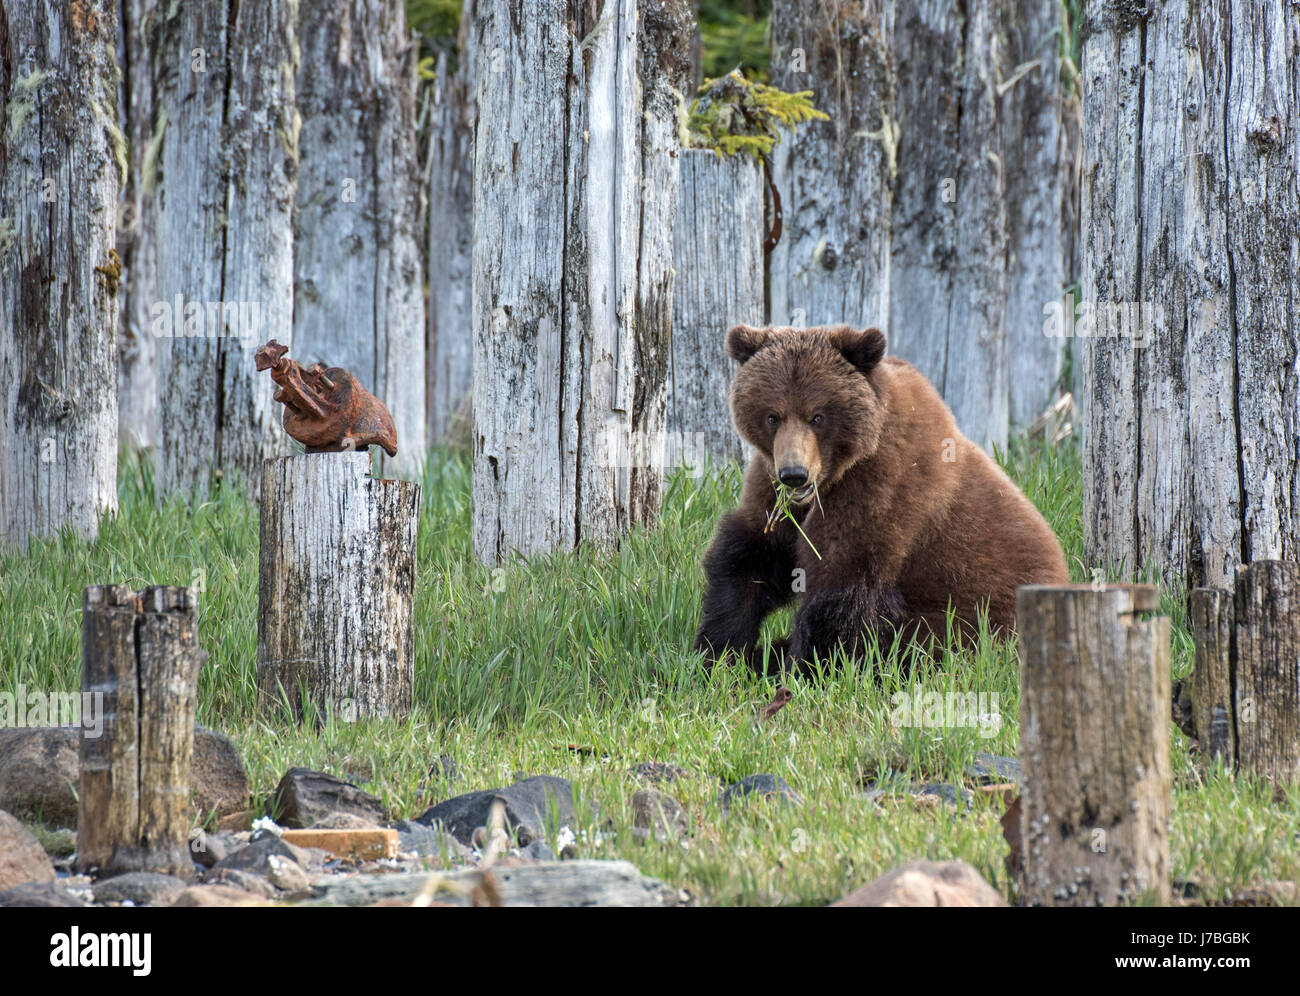 Grizzly Bear Grass in Southeast Alaska Essen Stockbild